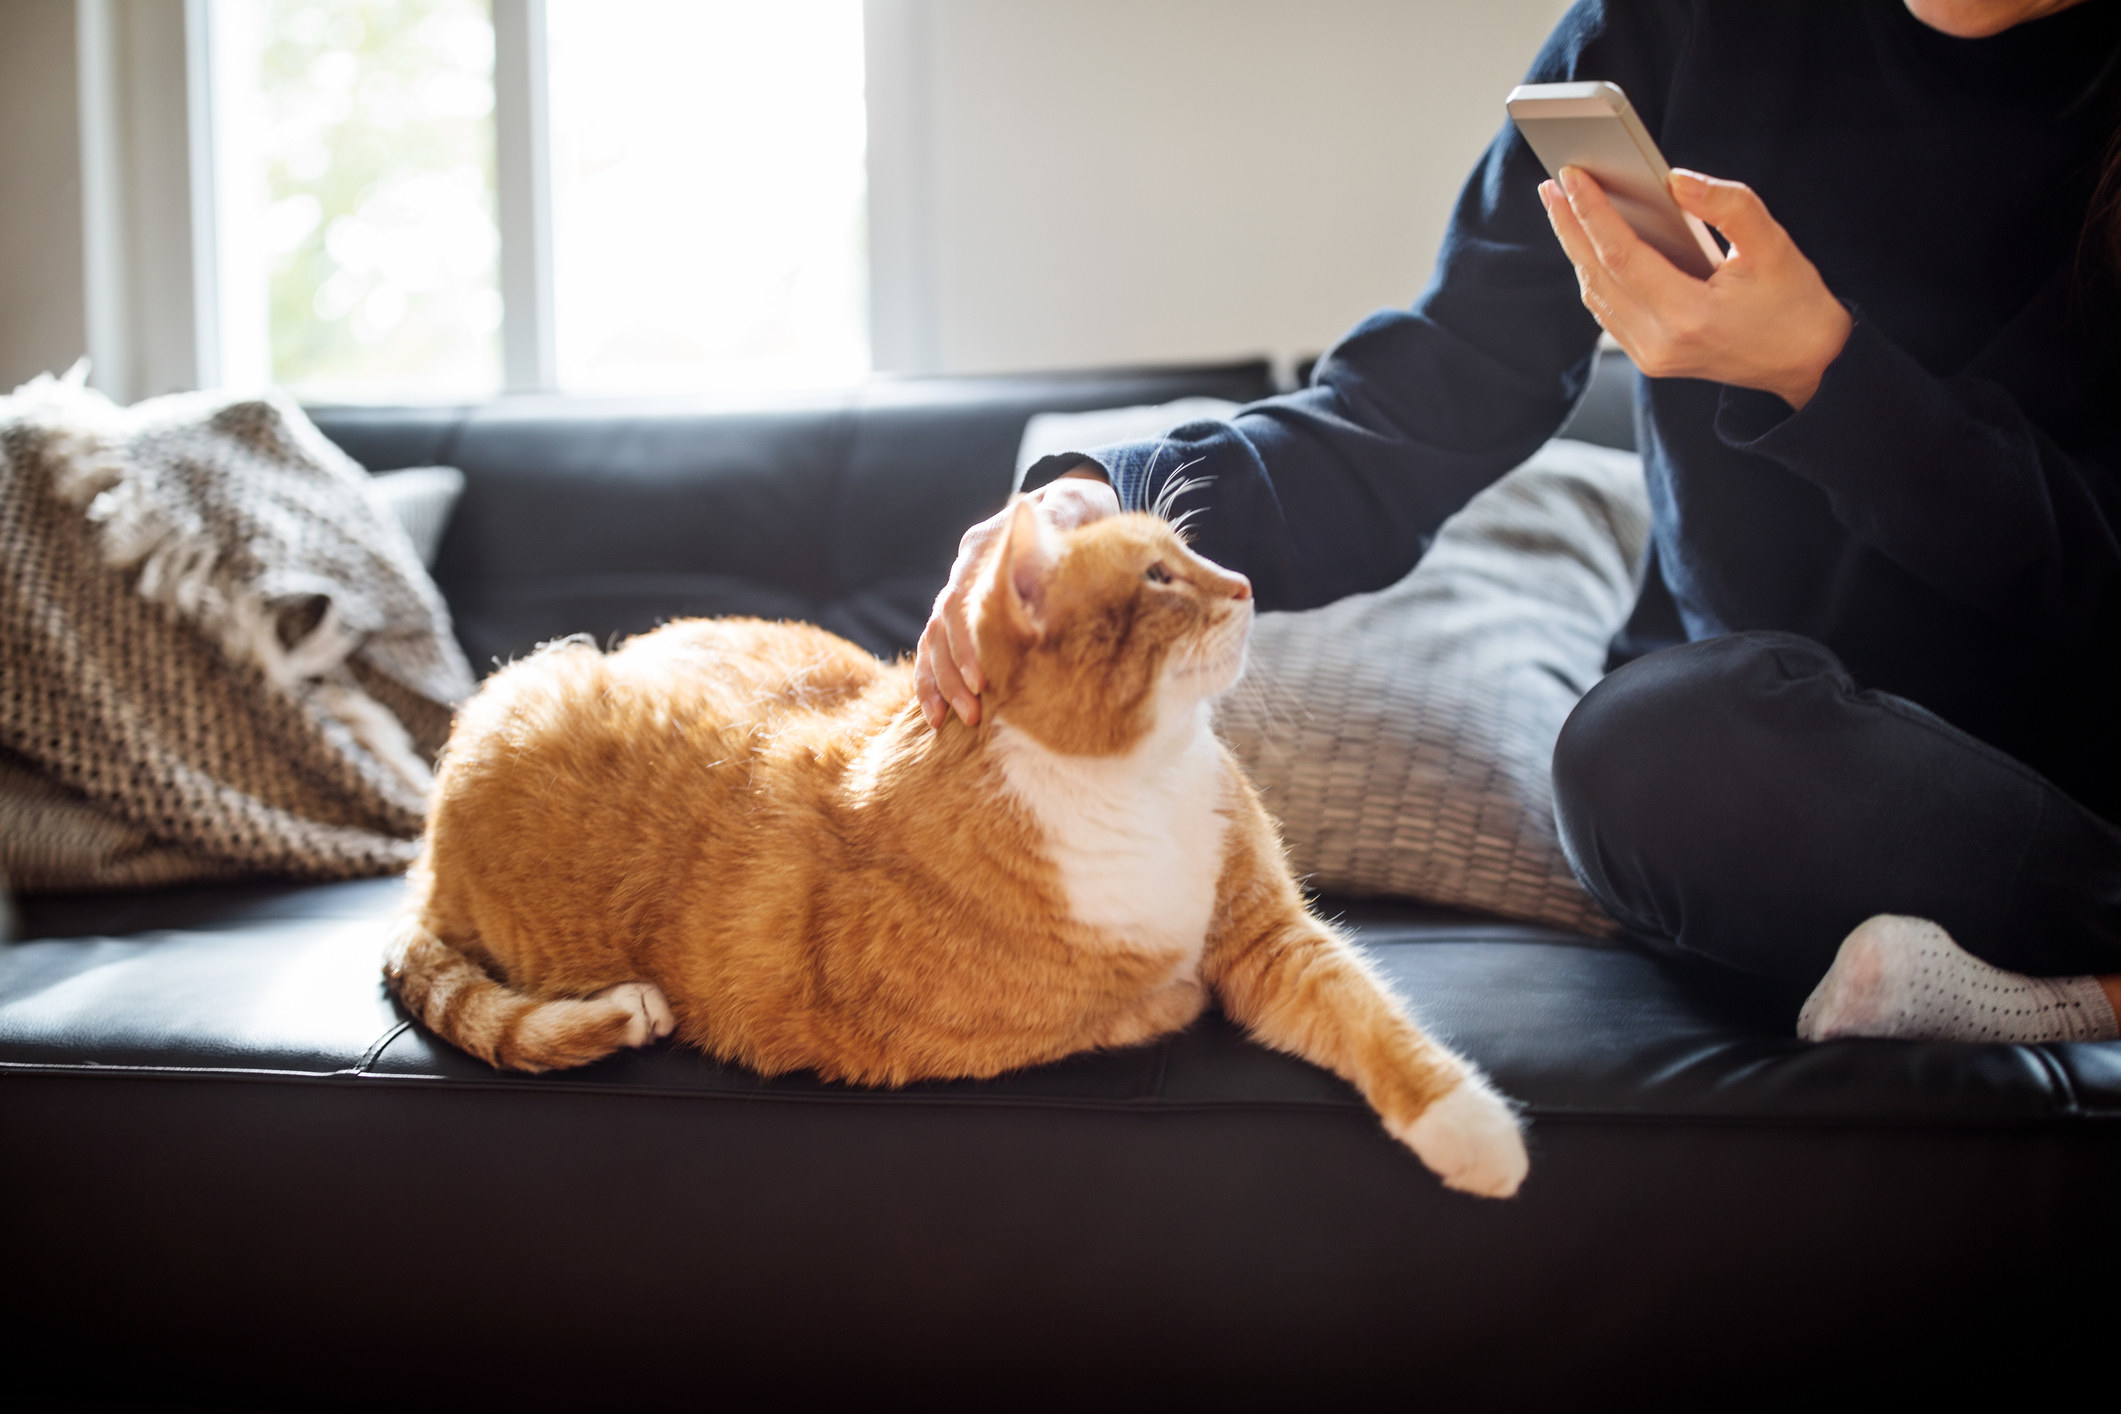 Woman sitting on the couch with a cat holding a cell phone.